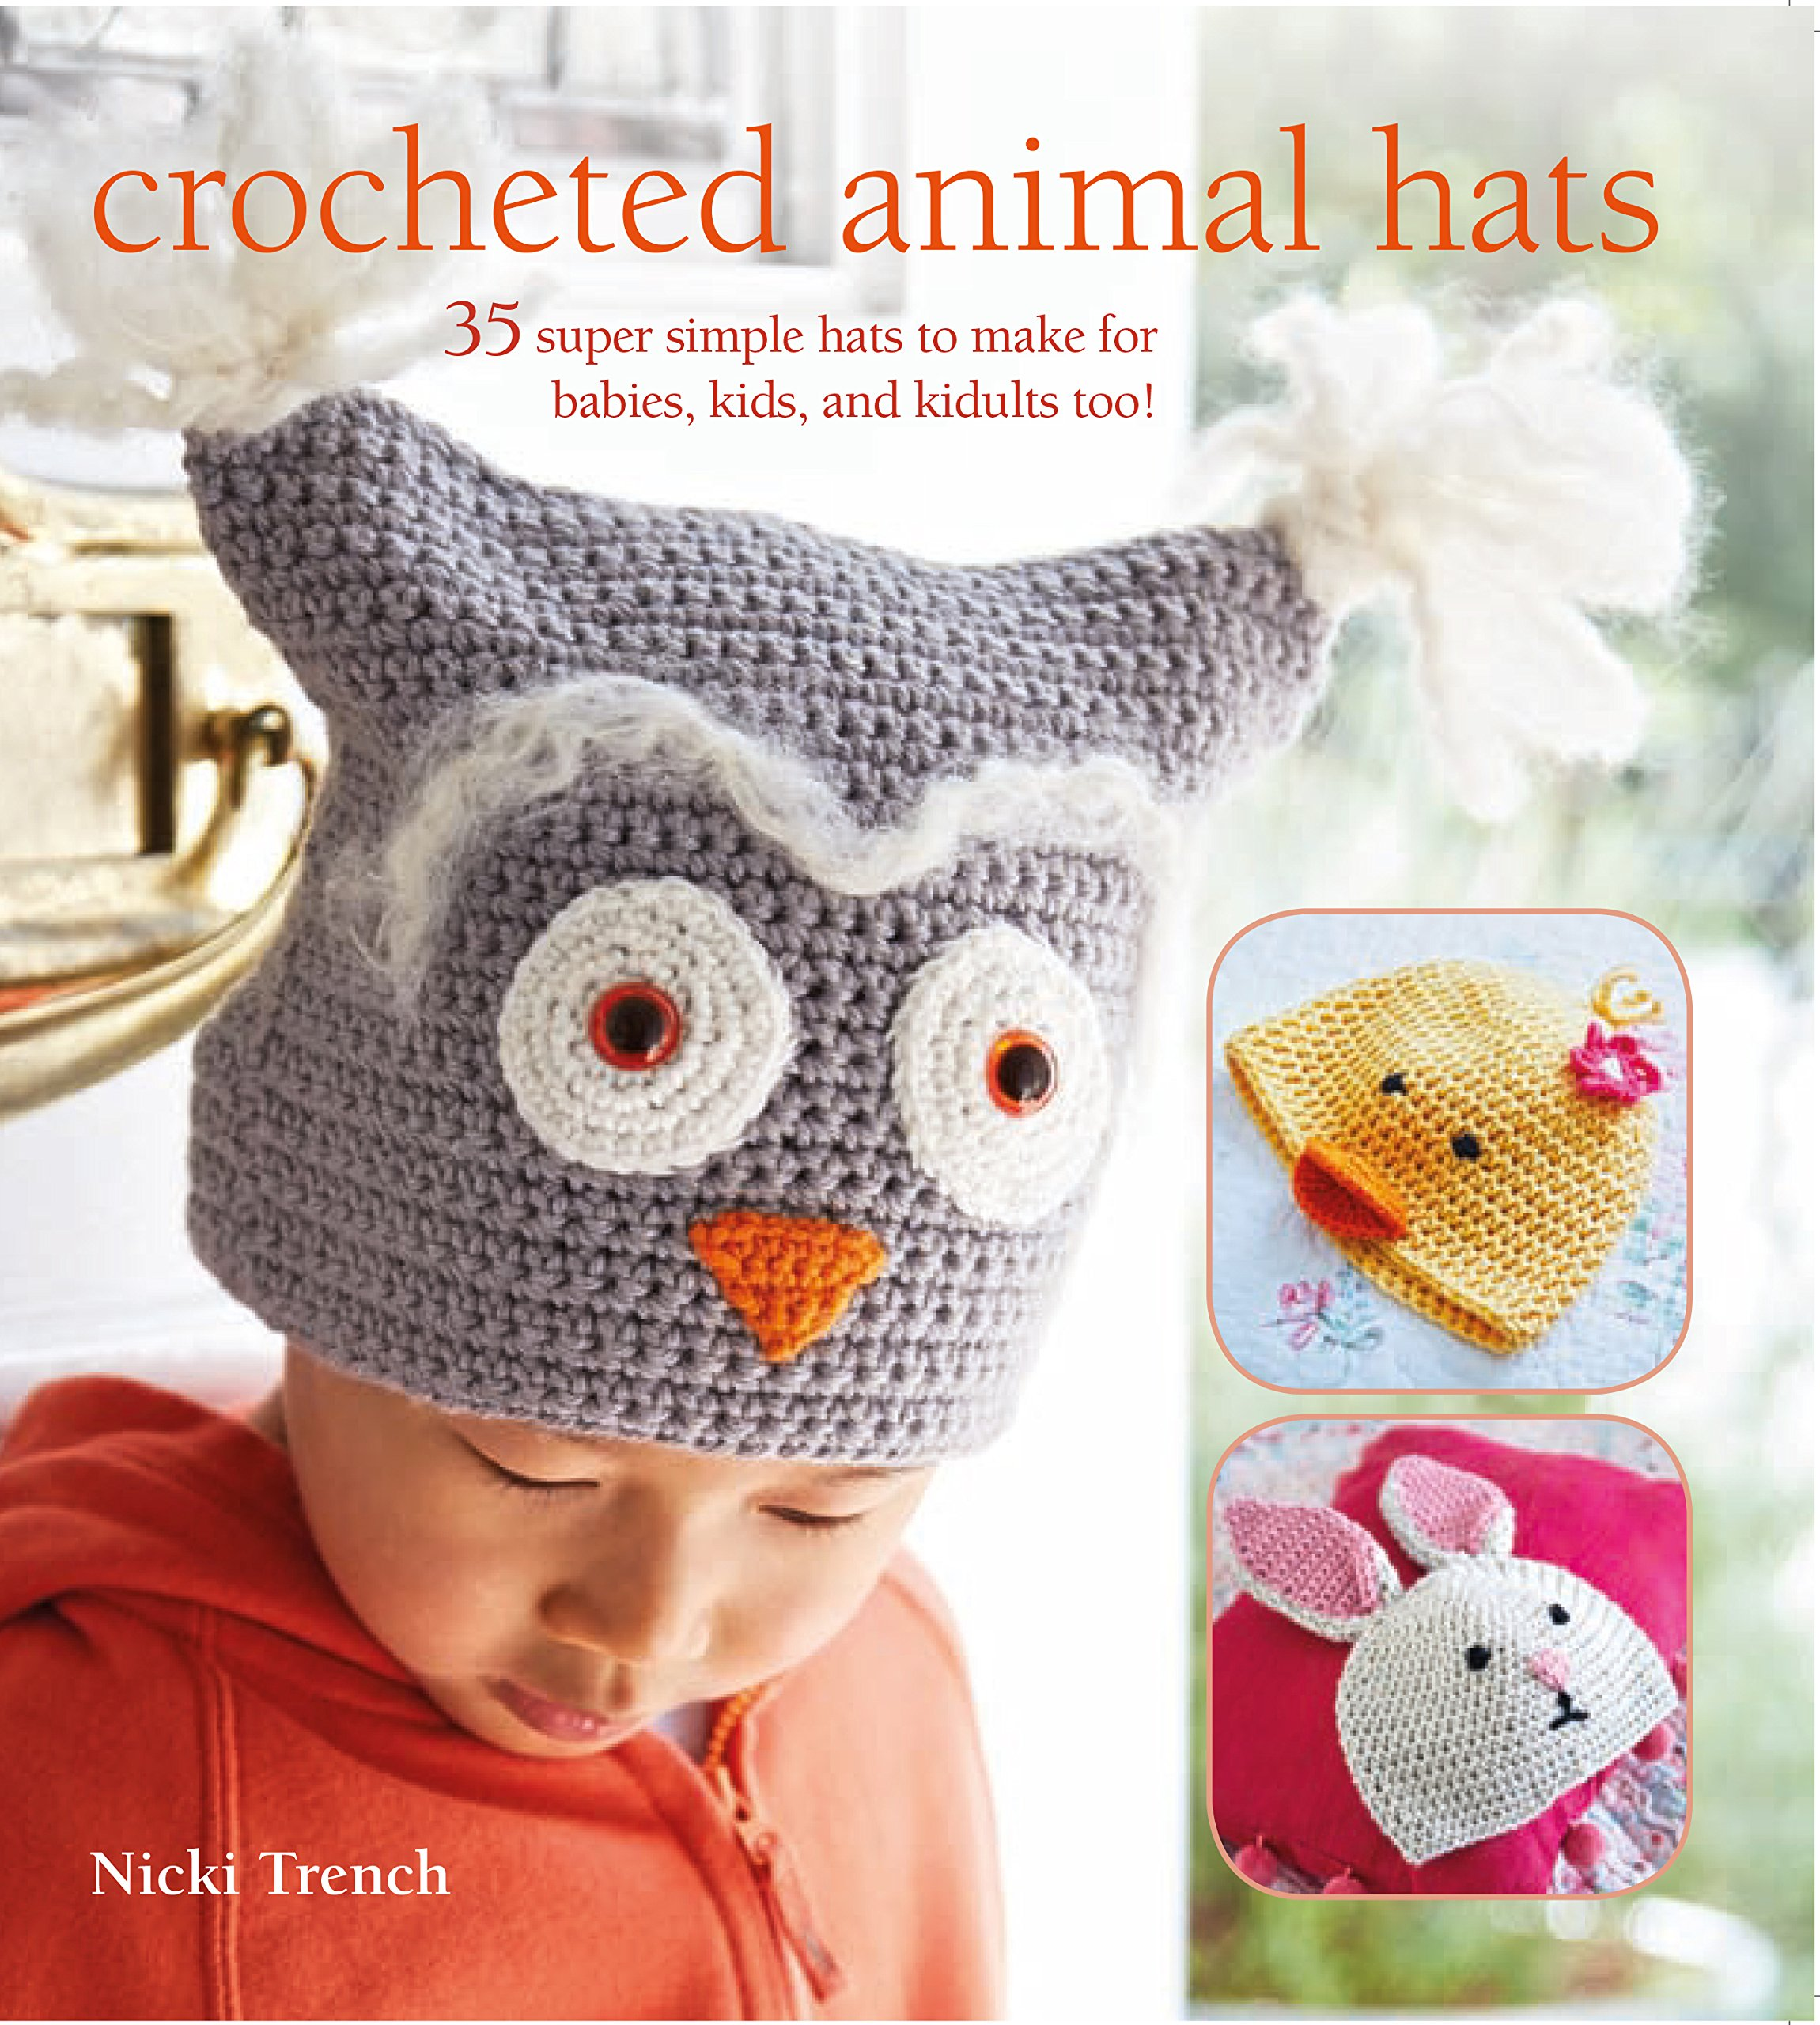 d82176118a3 Crocheted Animal Hats  35 super simple hats to make for babies